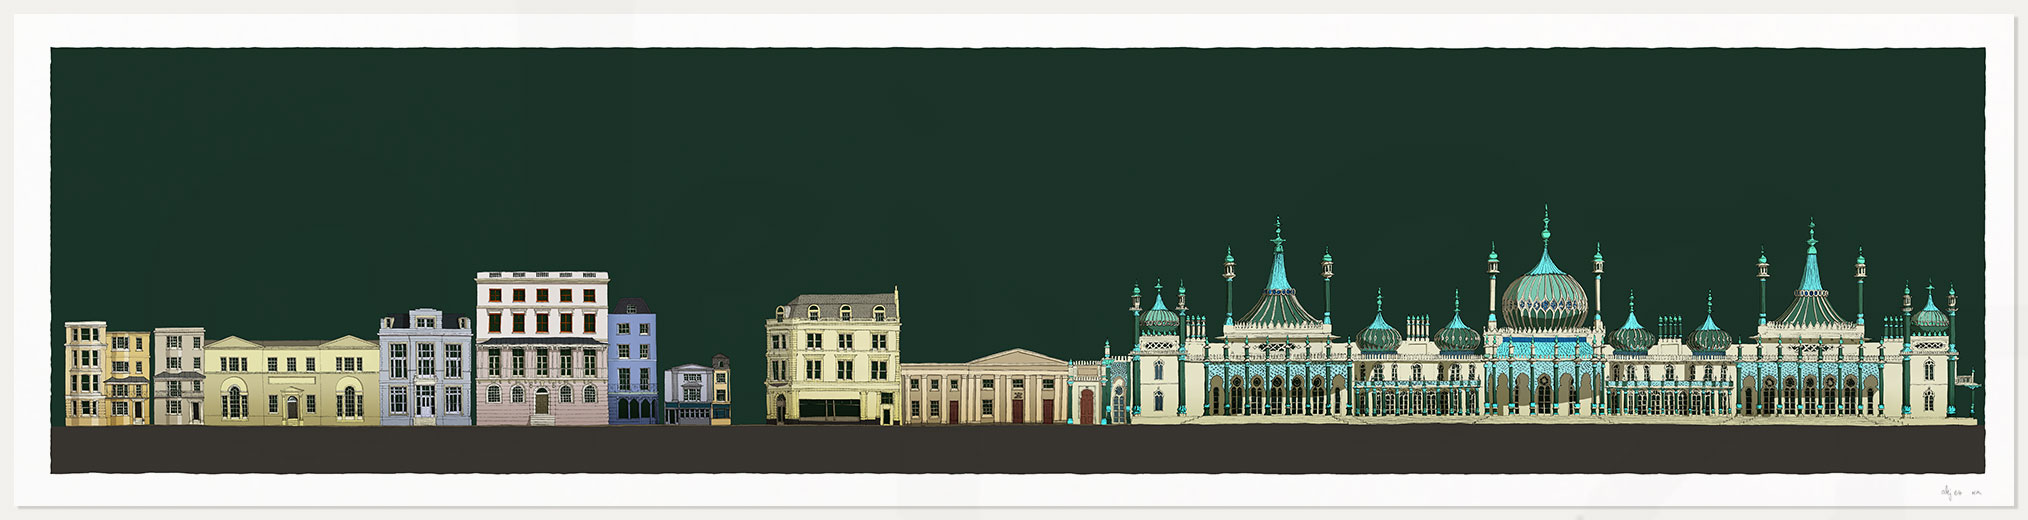 print named Hers and His Fitzherbert and George IV Brighton Pavilion Emerald Skies by artist alej ez